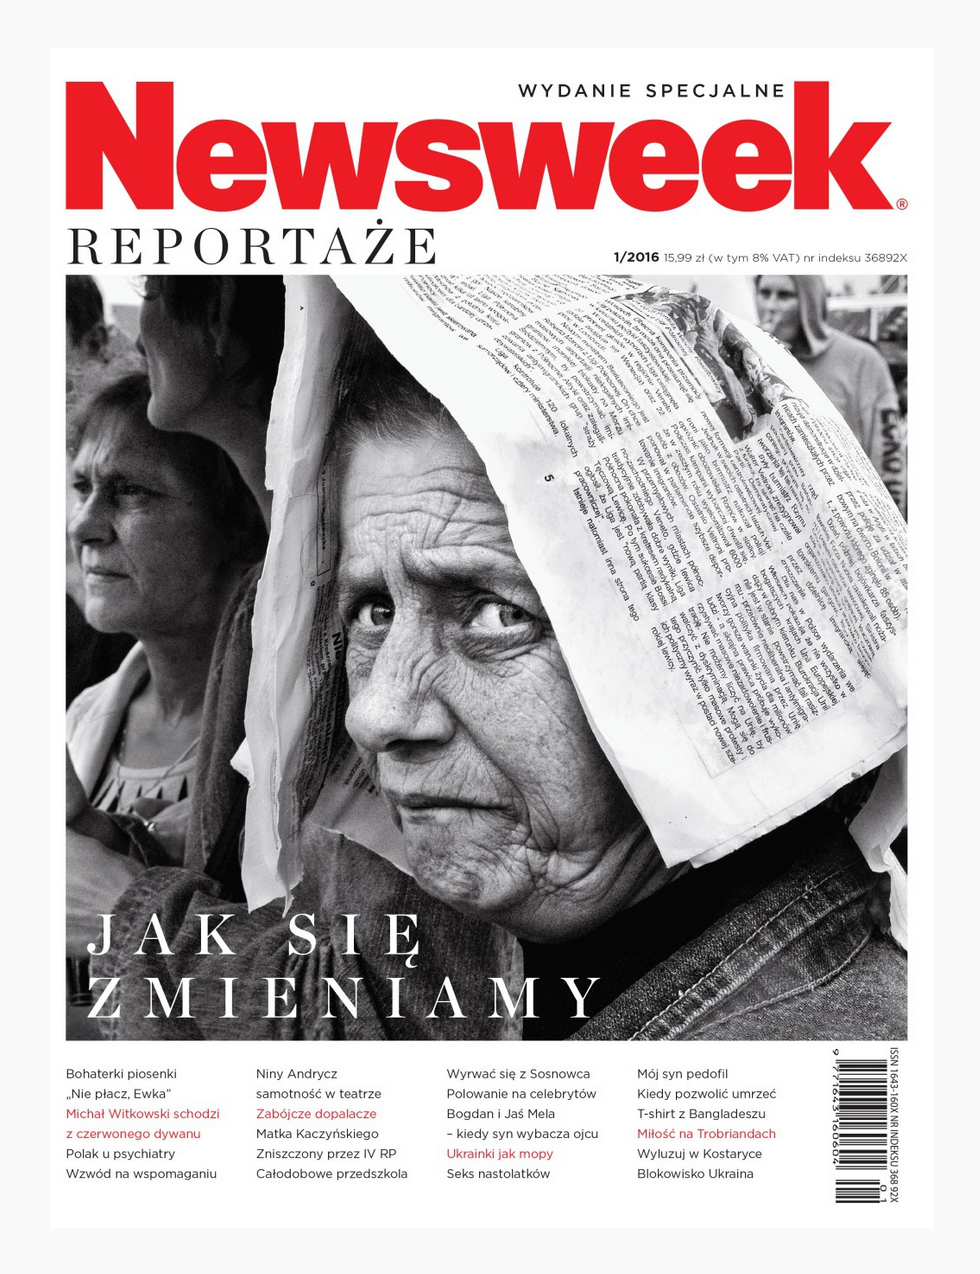 NEWSWEEK - SPECIAL EDITION 1/16